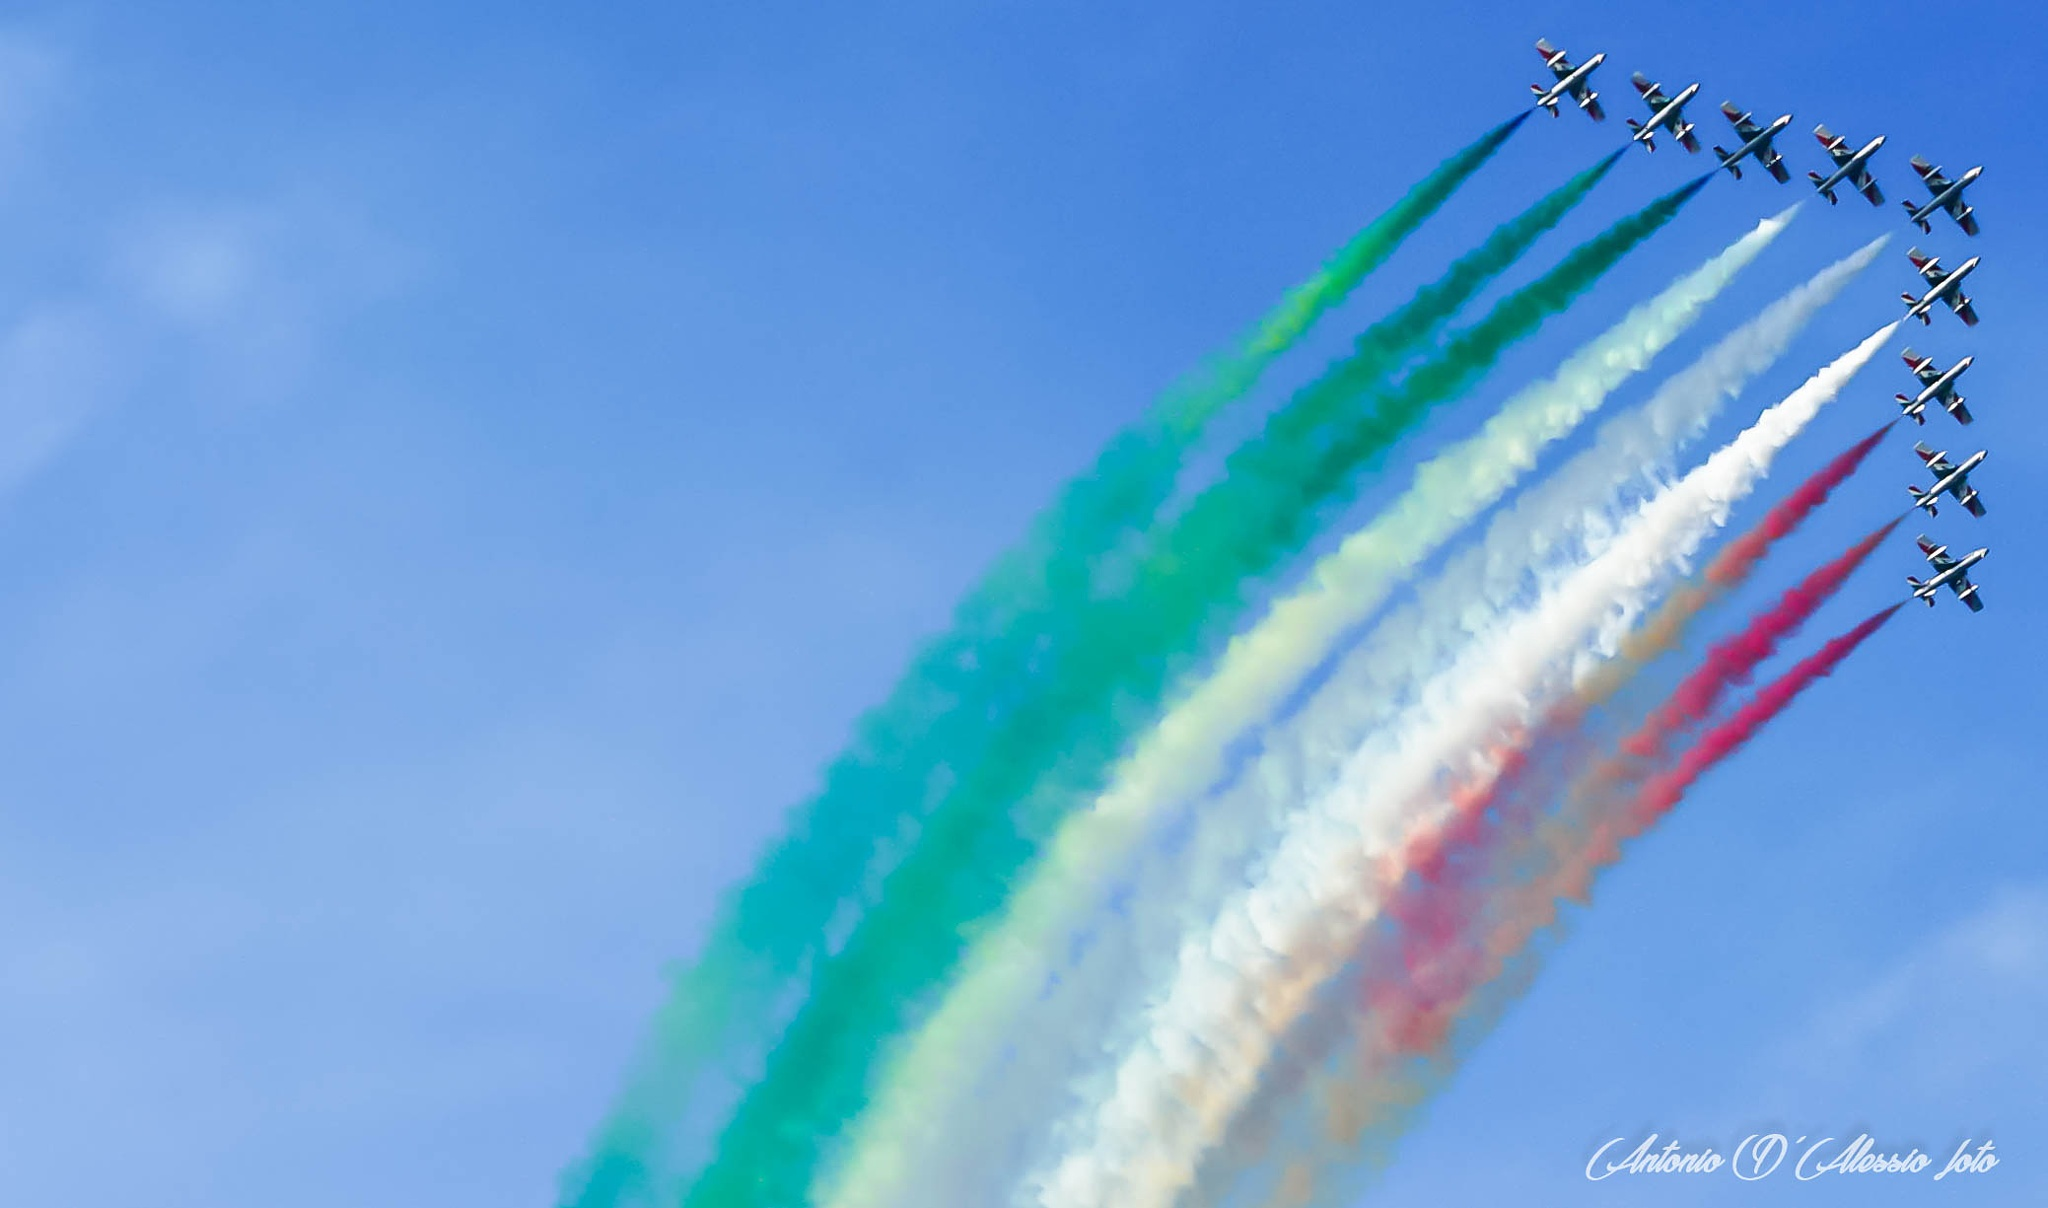 P.A.N. Acrobatic National Military Italy team by Antonio.DAlessio